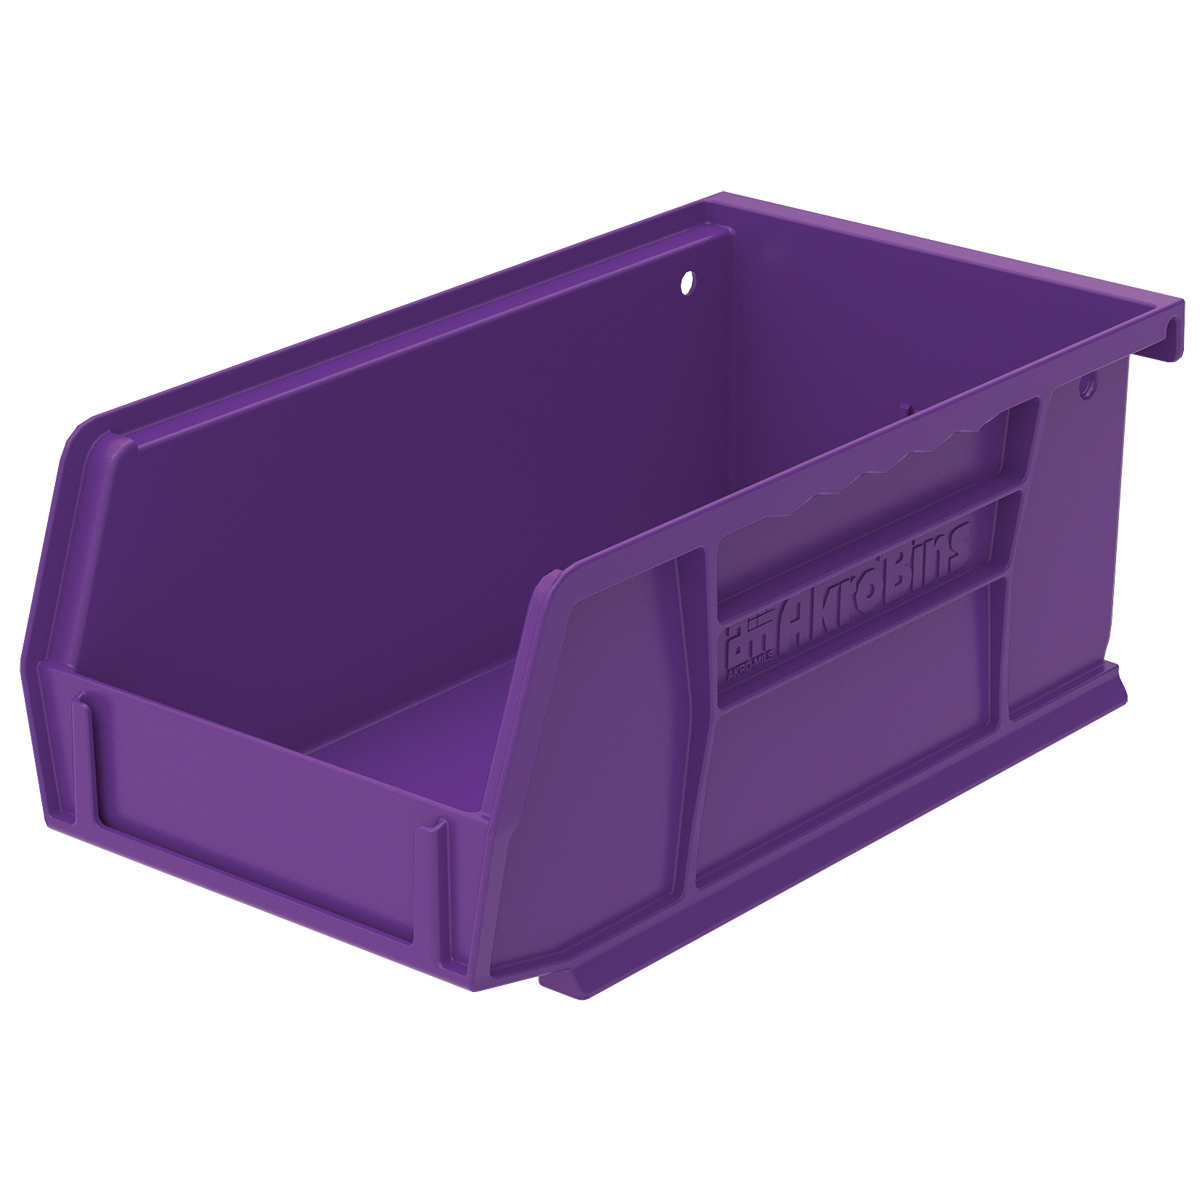 AkroBin 7-3/8 x 4-1/8 x 3, Purple (30220PURPL).  This item sold in carton quantities of 24.